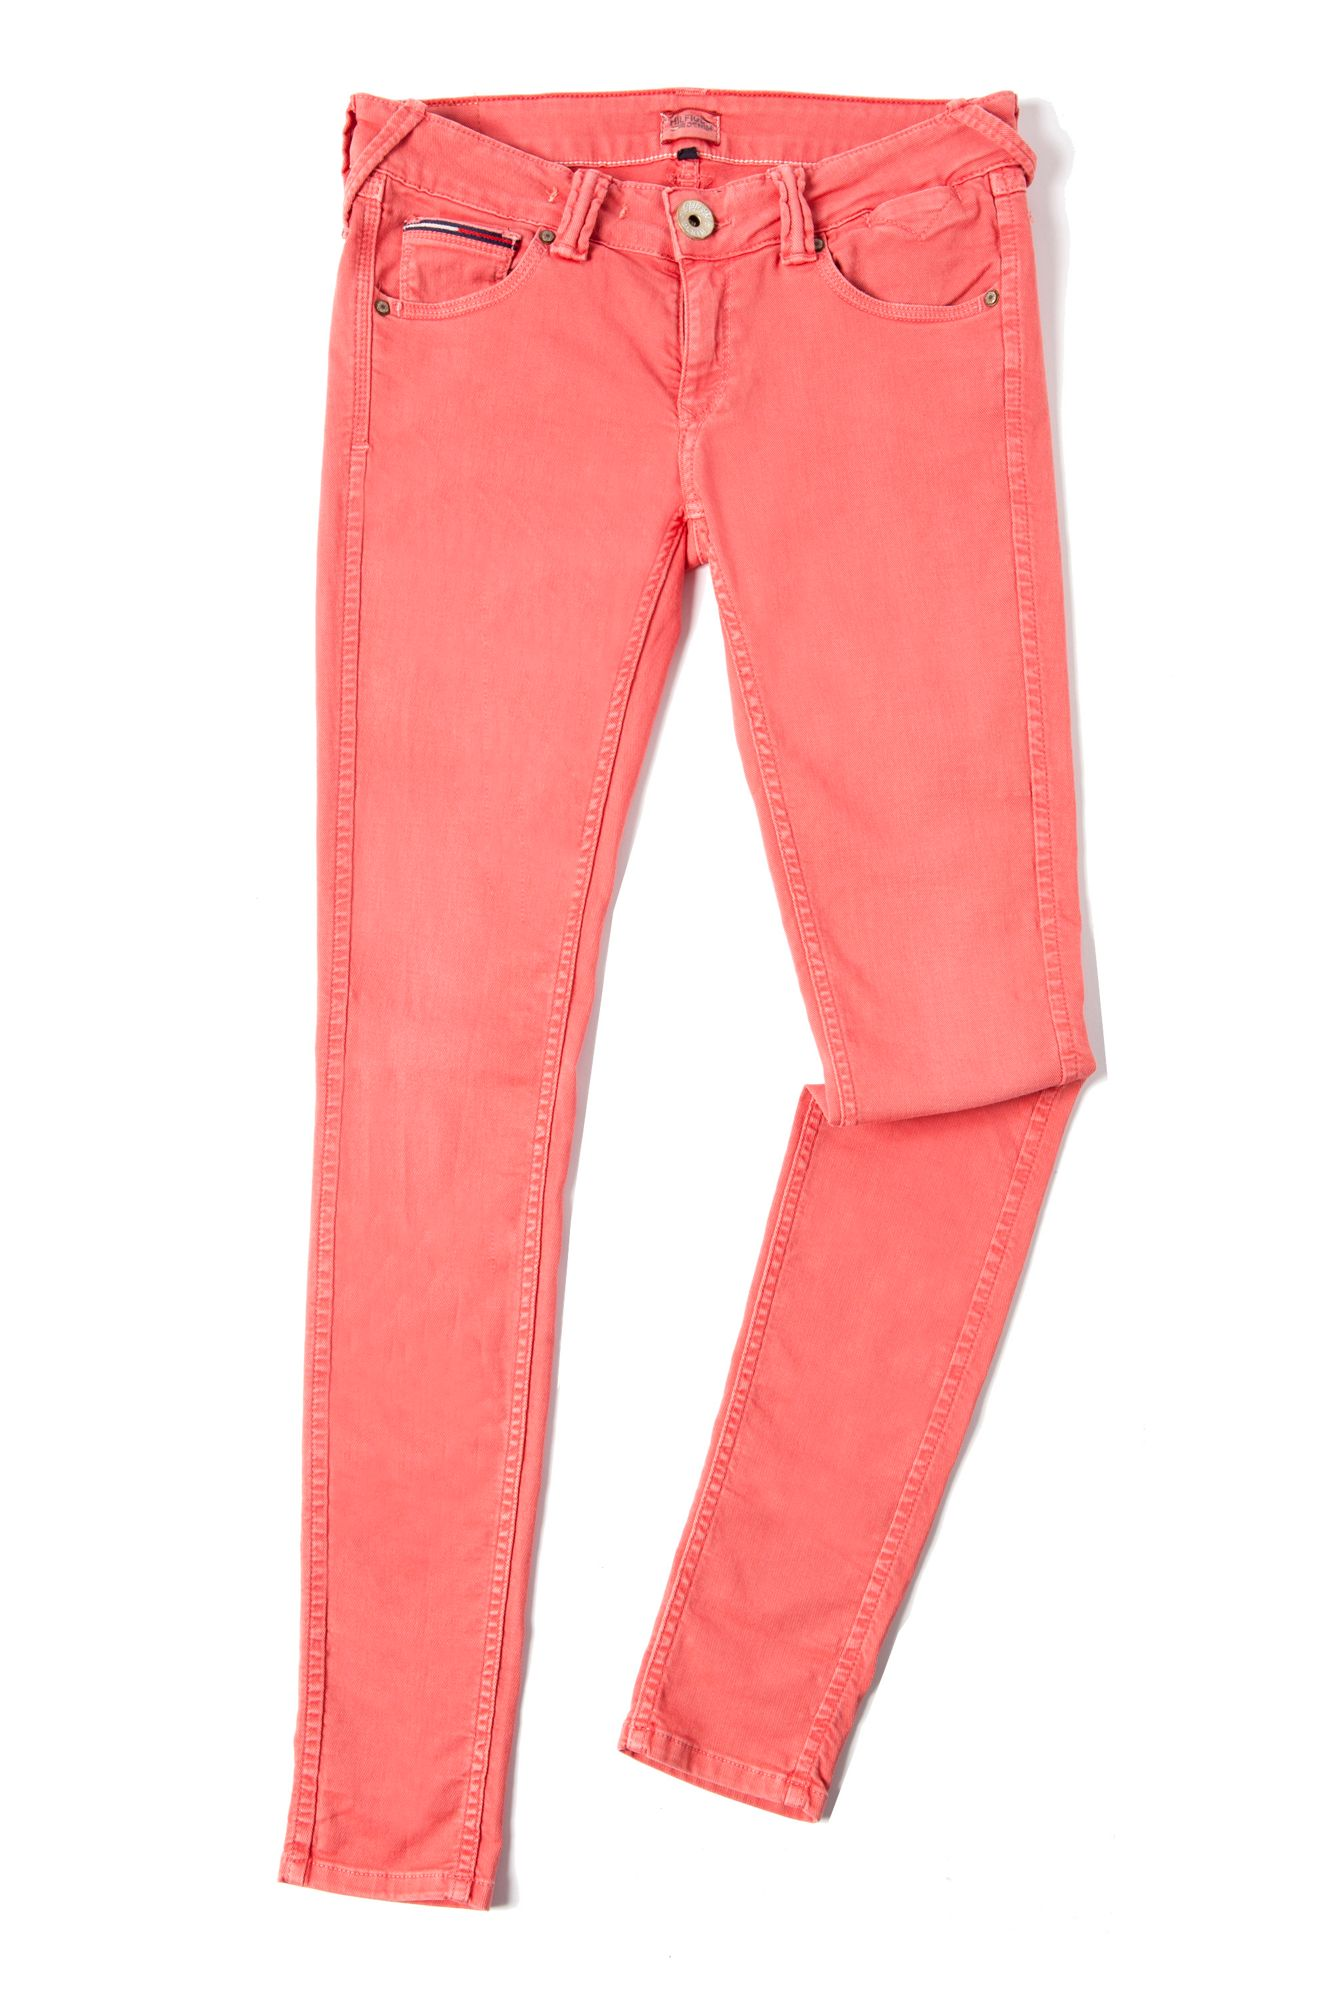 tommy hilfiger sophie skinny jean in pink lyst. Black Bedroom Furniture Sets. Home Design Ideas